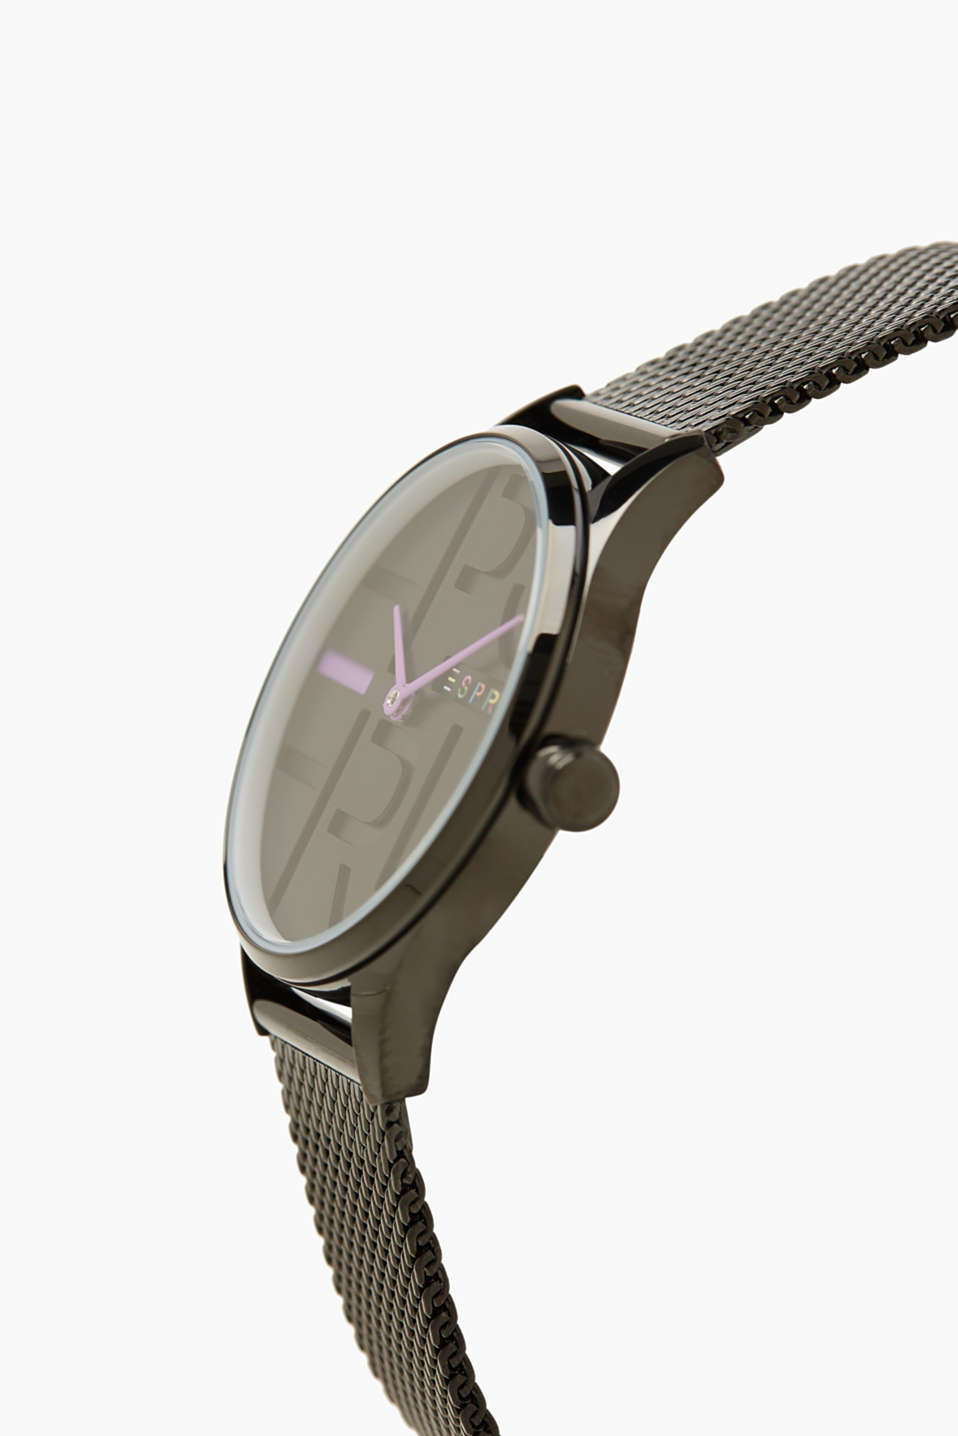 Stainless-steel watch with a Milanese strap